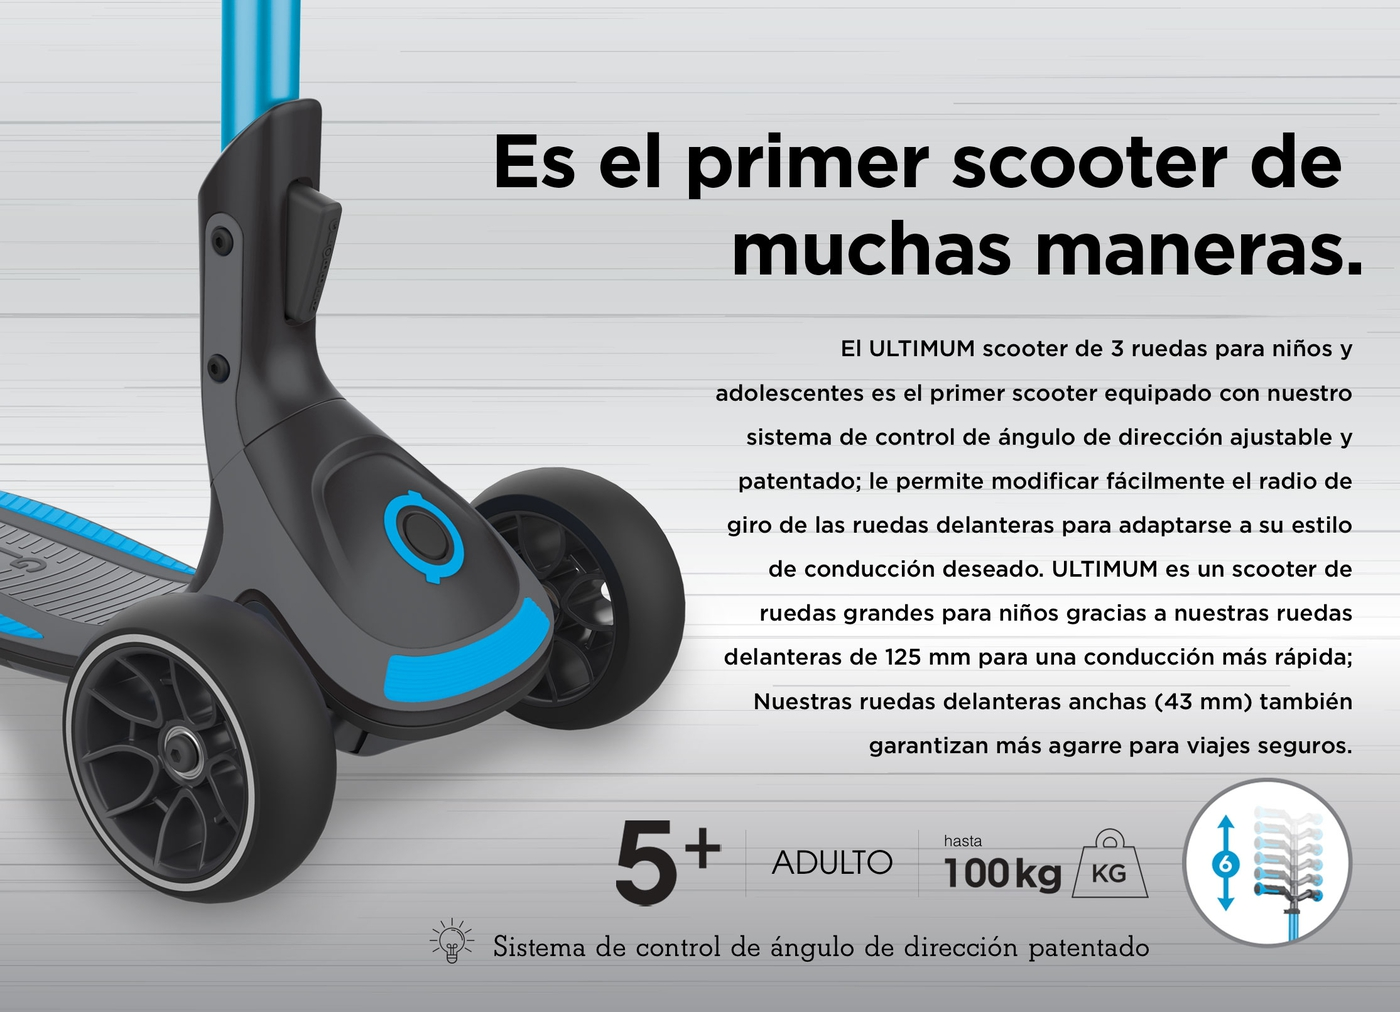 ULTIMUM is the first-ever scooter in so many ways